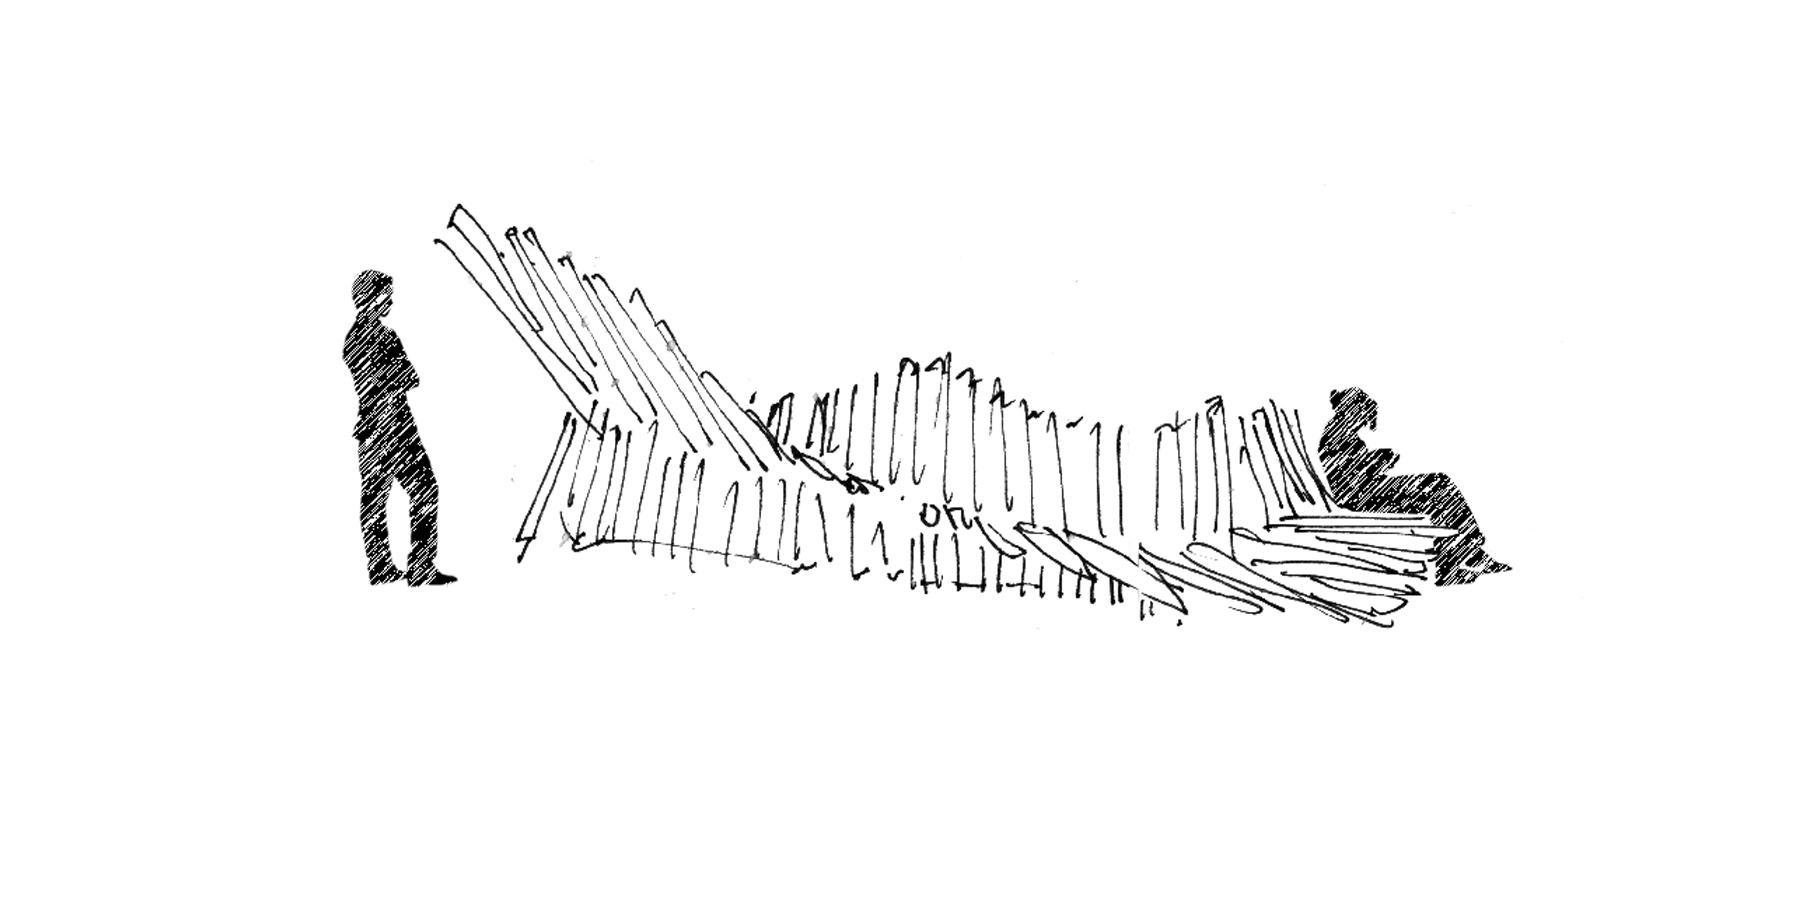 fence undulation diagram.jpg